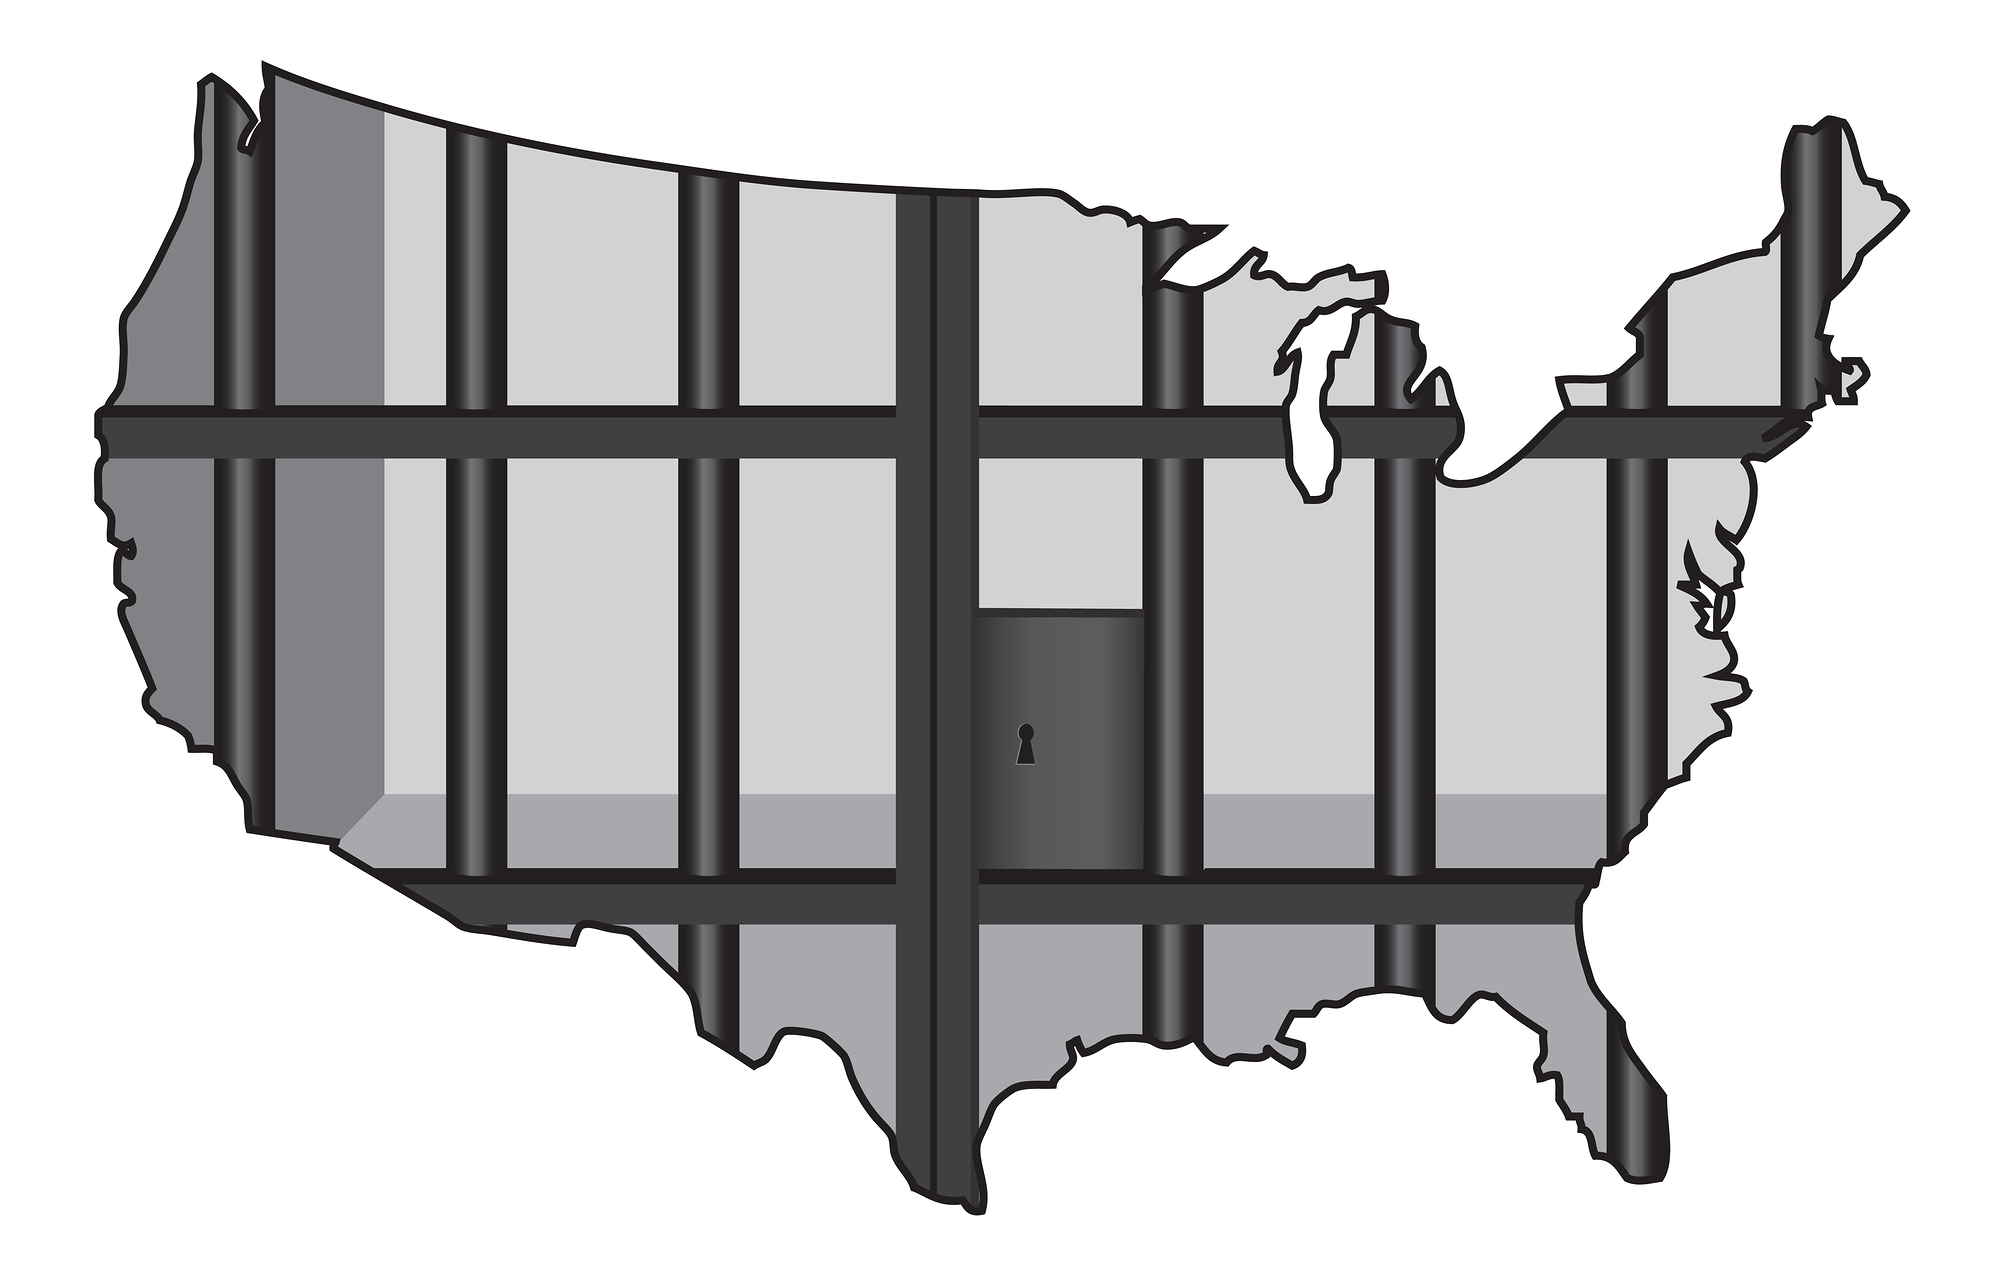 a prison cell in the shape of the map of the US